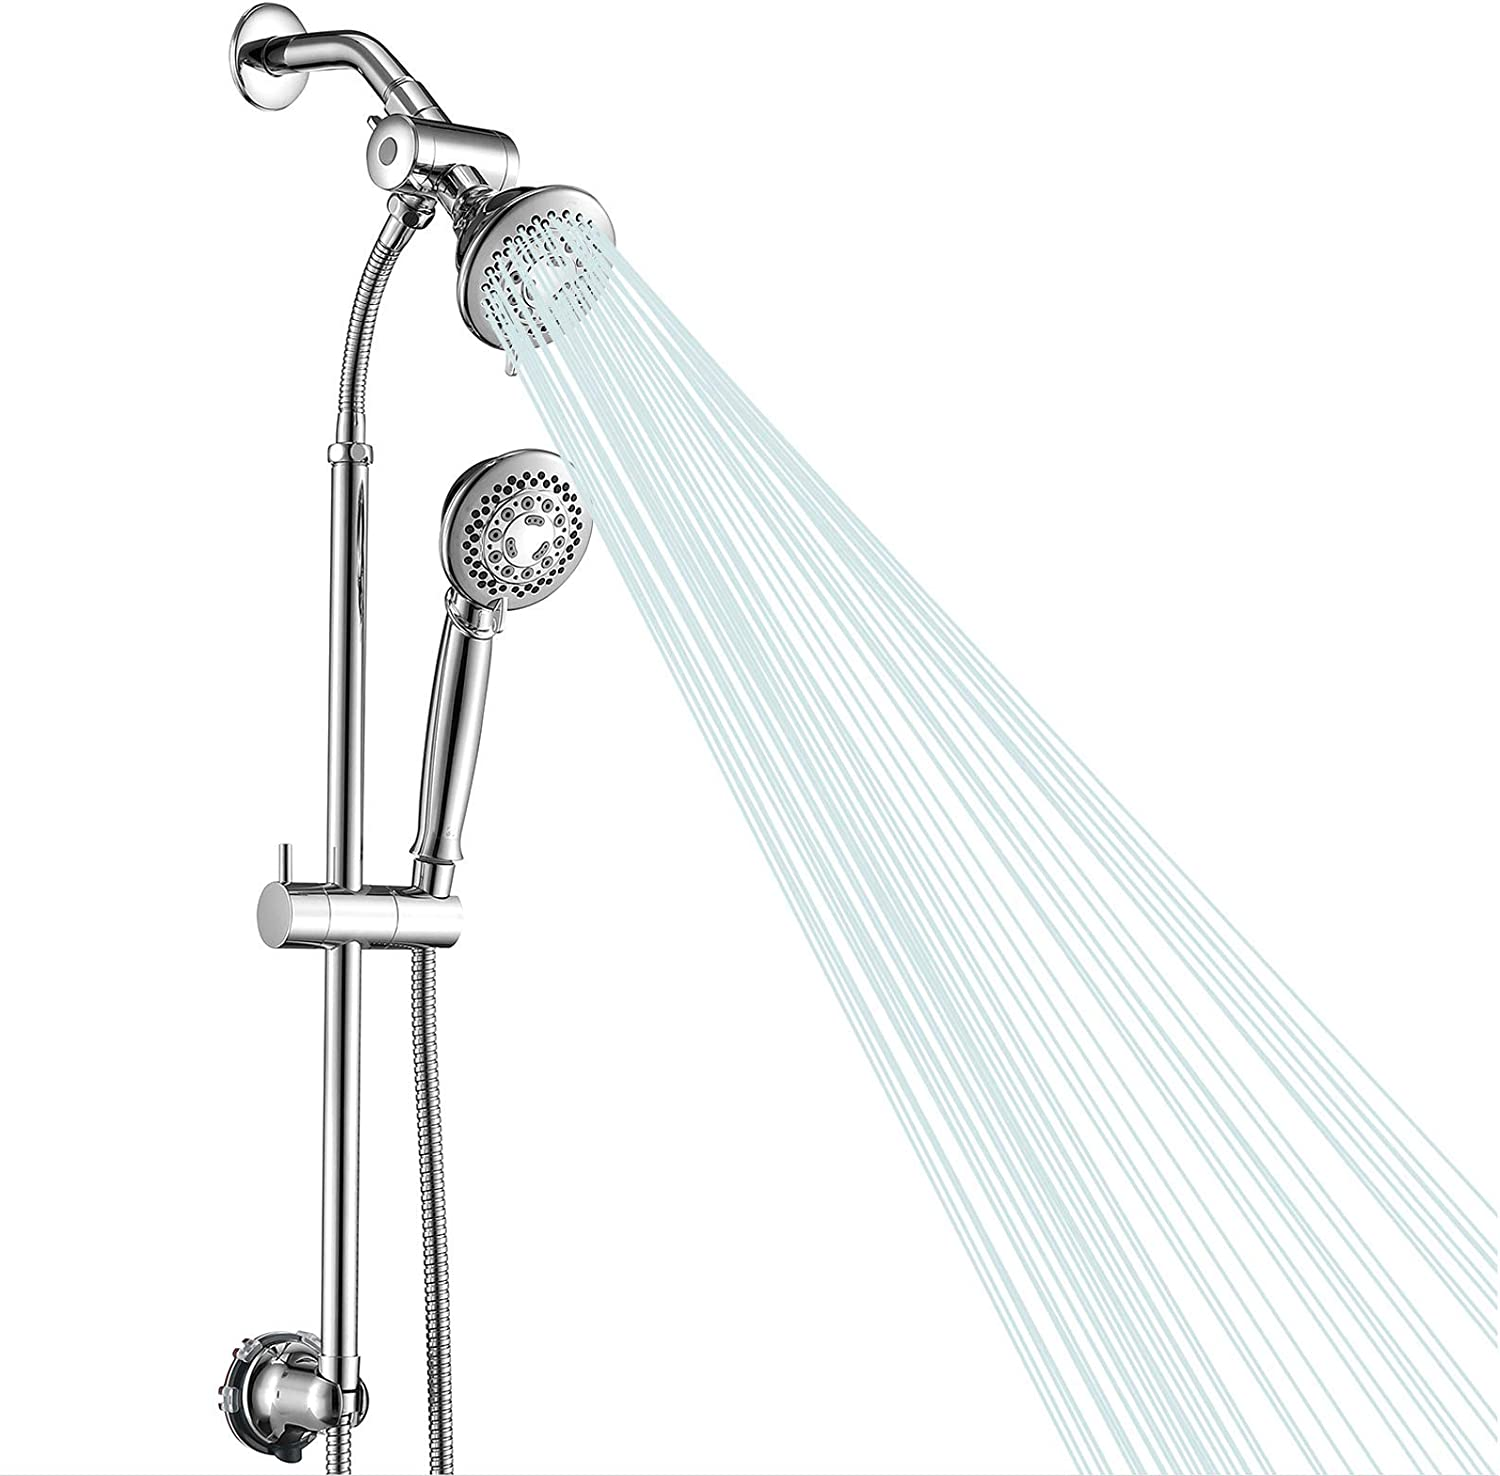 HOMELODY Cheap mail order specialty store Handheld Showerhead and overseas Head Shower Faucet Polis